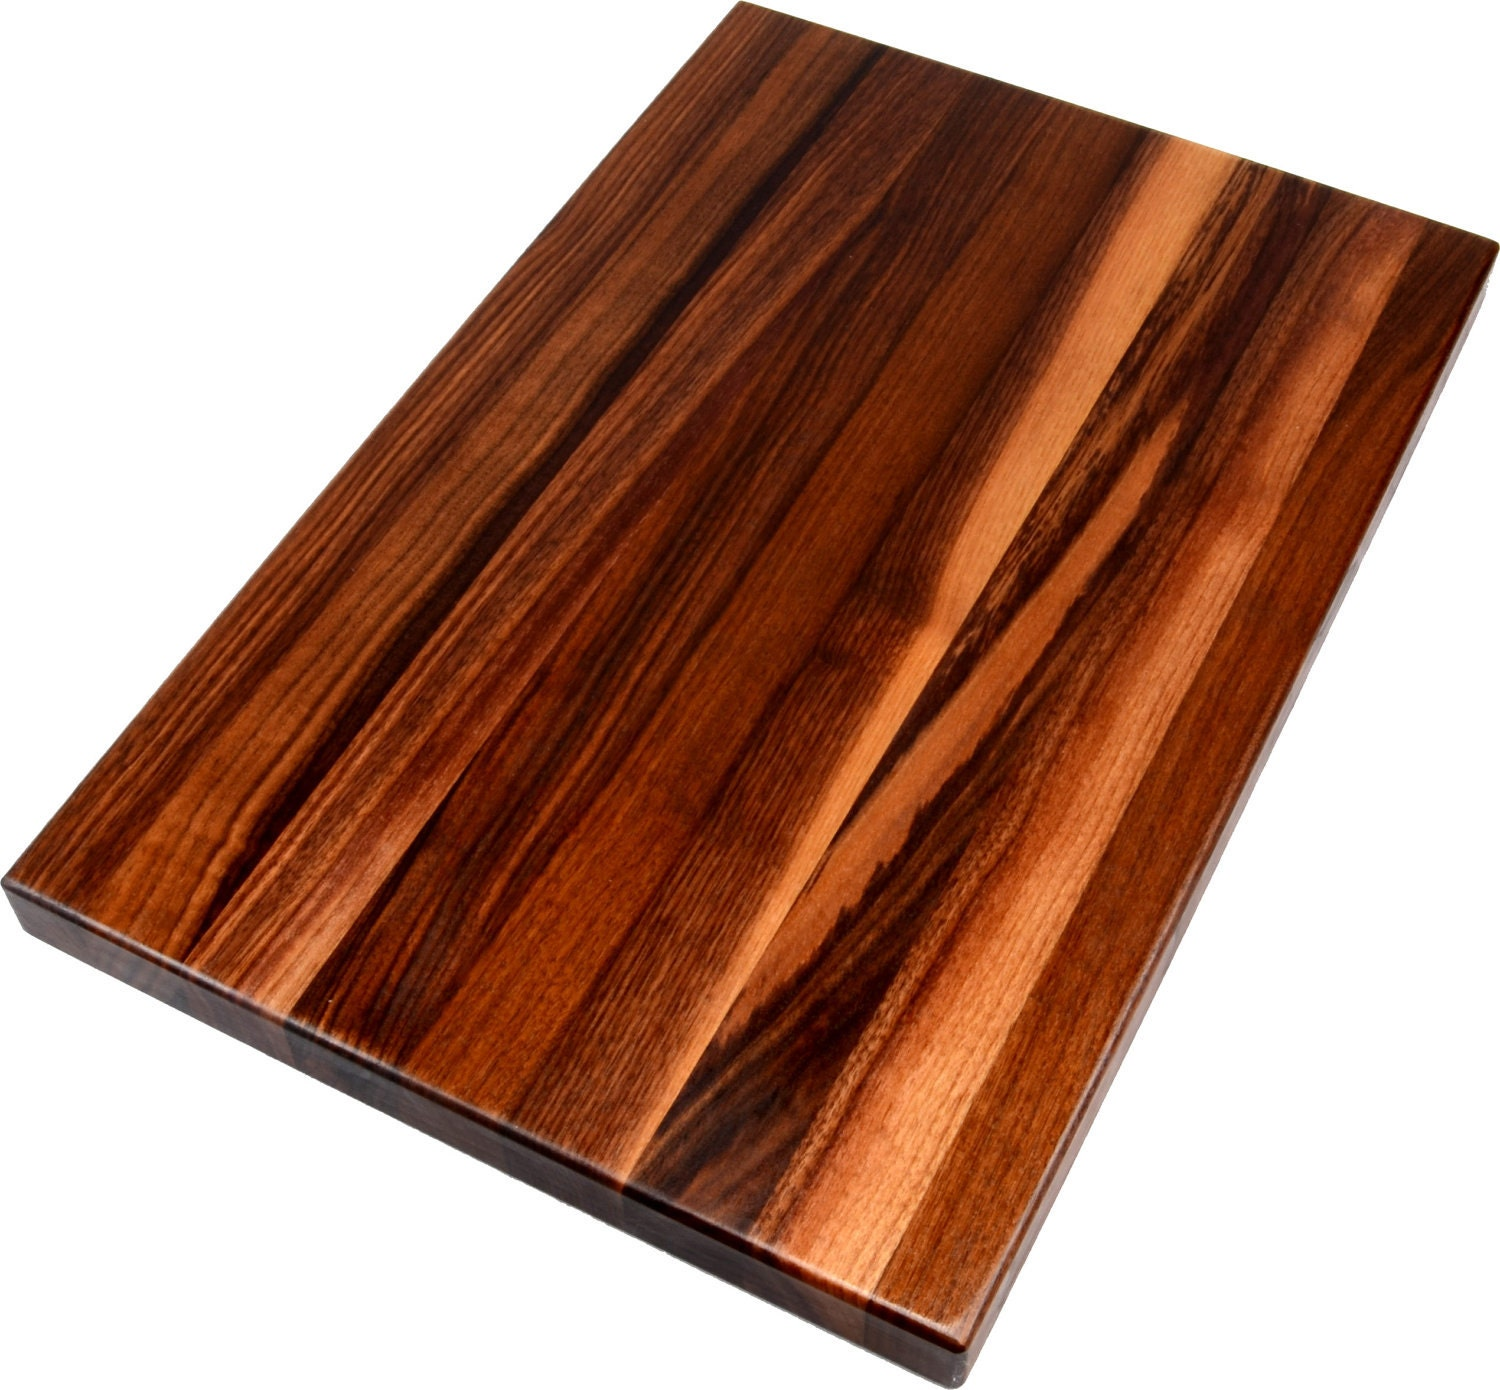 wood cutting board. Black Bedroom Furniture Sets. Home Design Ideas